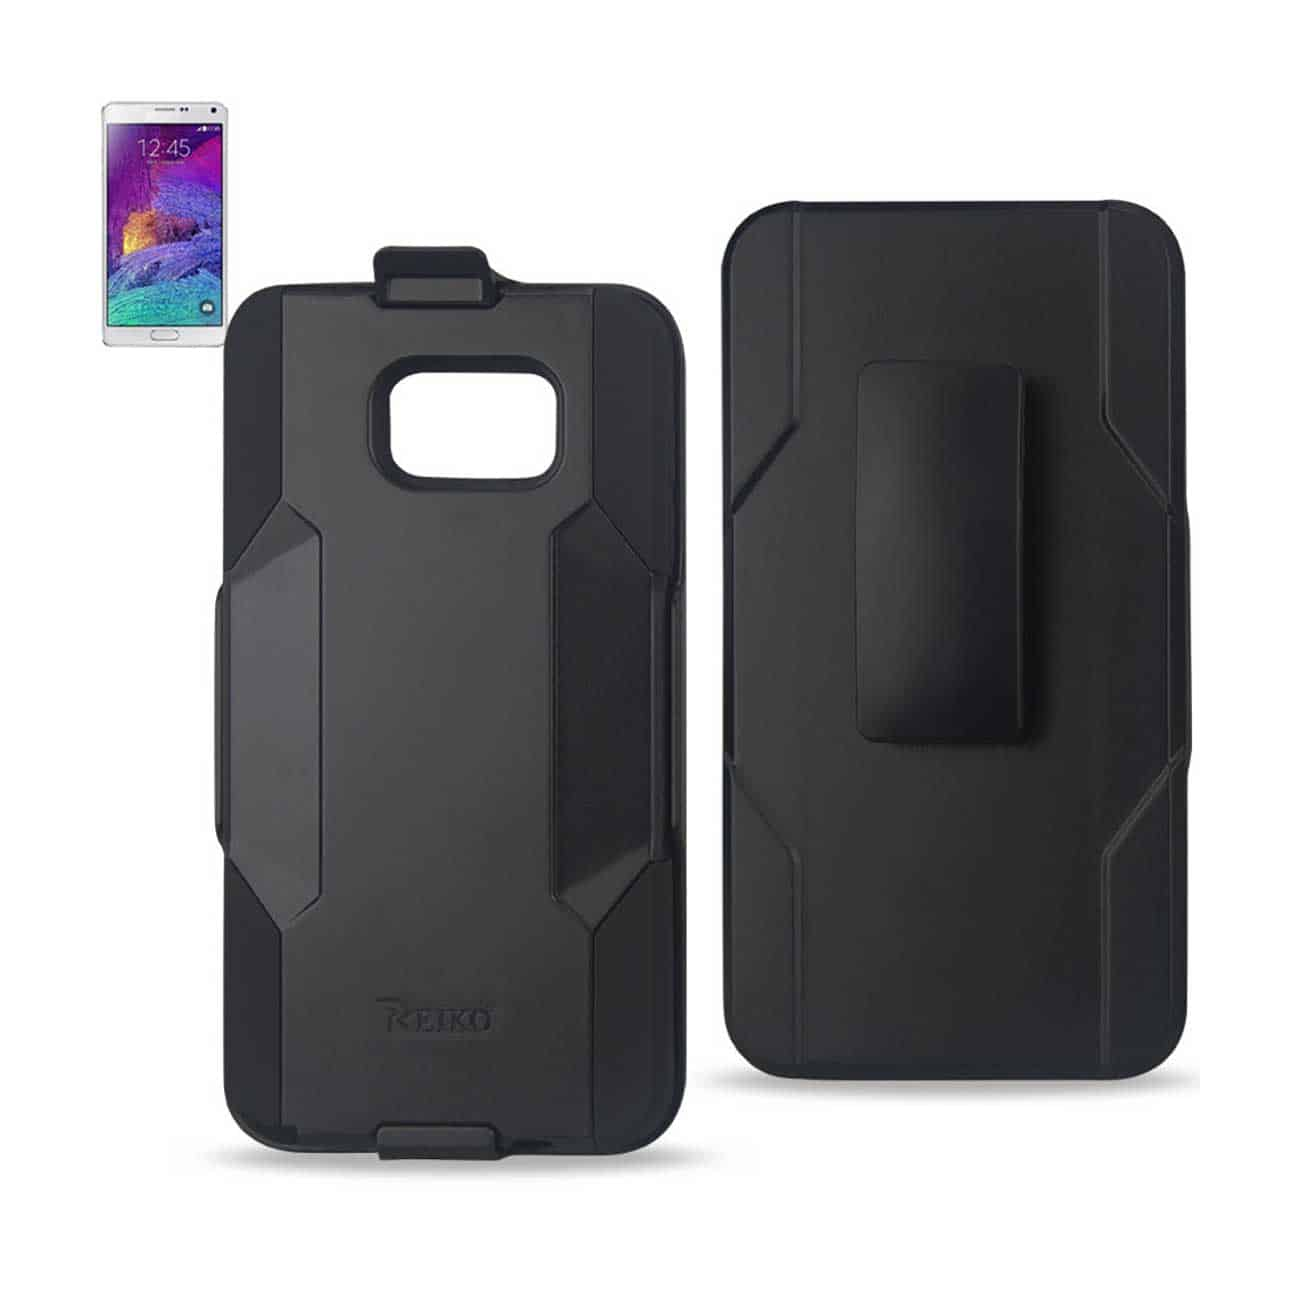 SAMSUNG GALAXY NOTE 5 3-IN-1 HYBRID HEAVY DUTY HOLSTER COMBO CASE IN BLACK